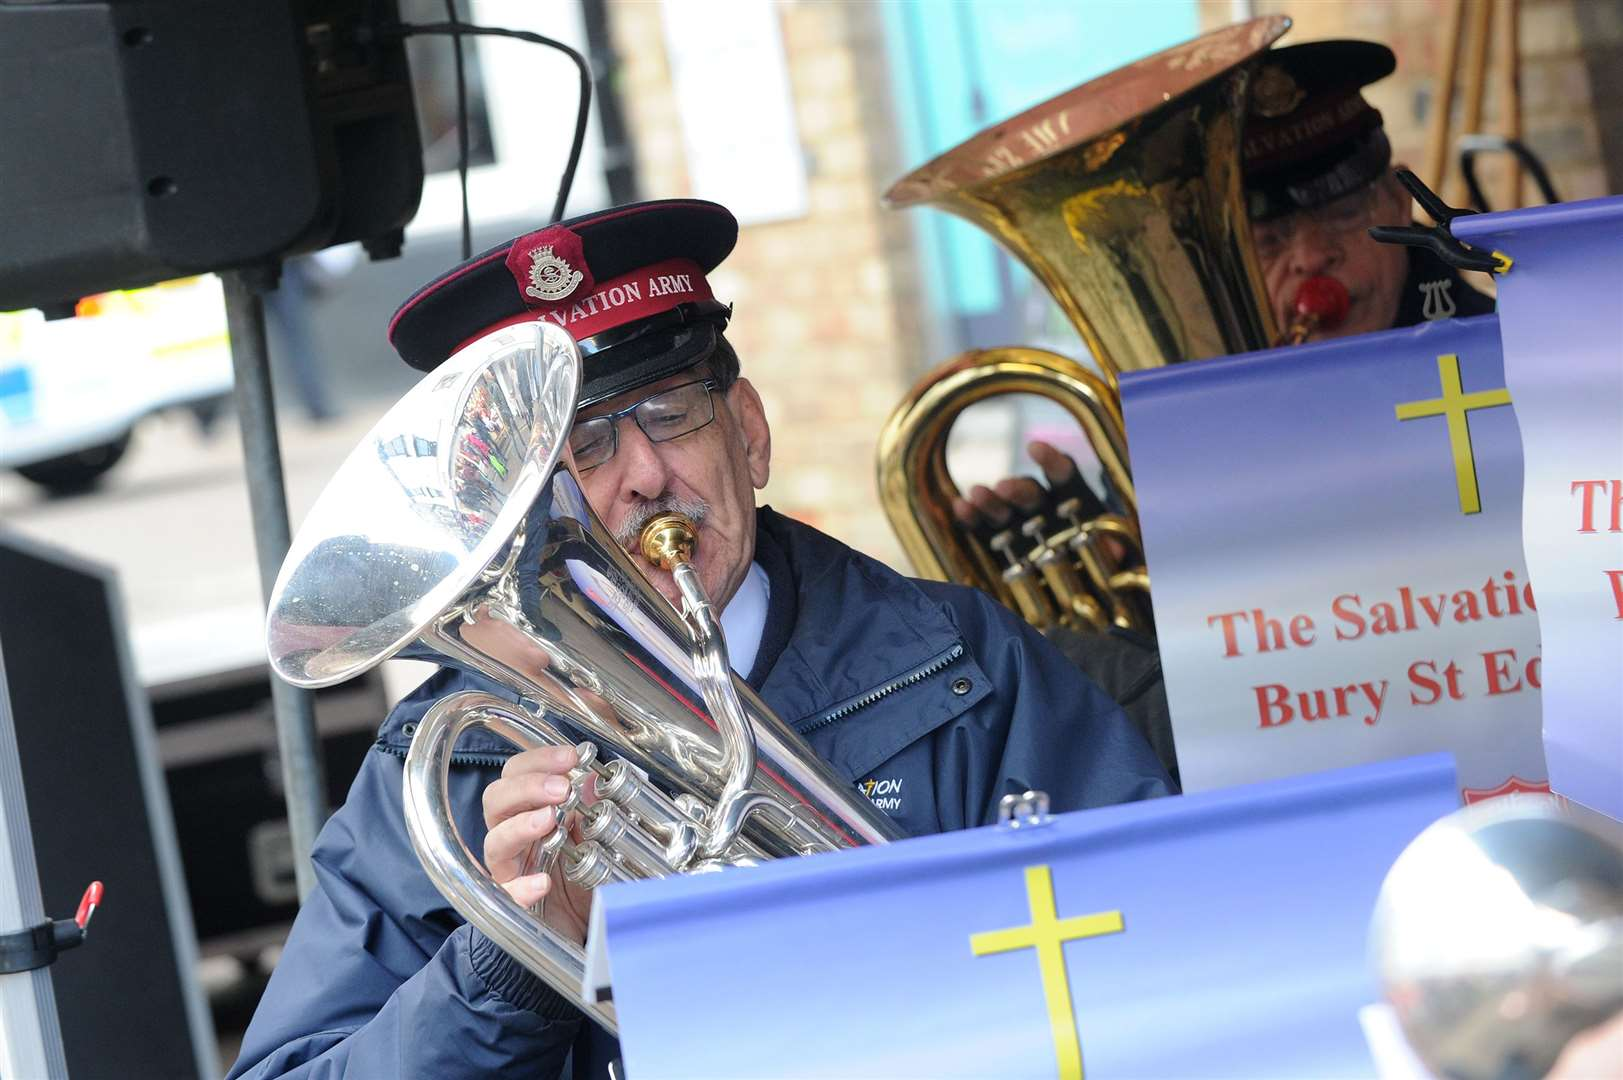 Bury St Edmunds Christmas Fayre 2018. Pictured: The Salvation Army of Bury St Edmunds. Picture: Mecha Morton